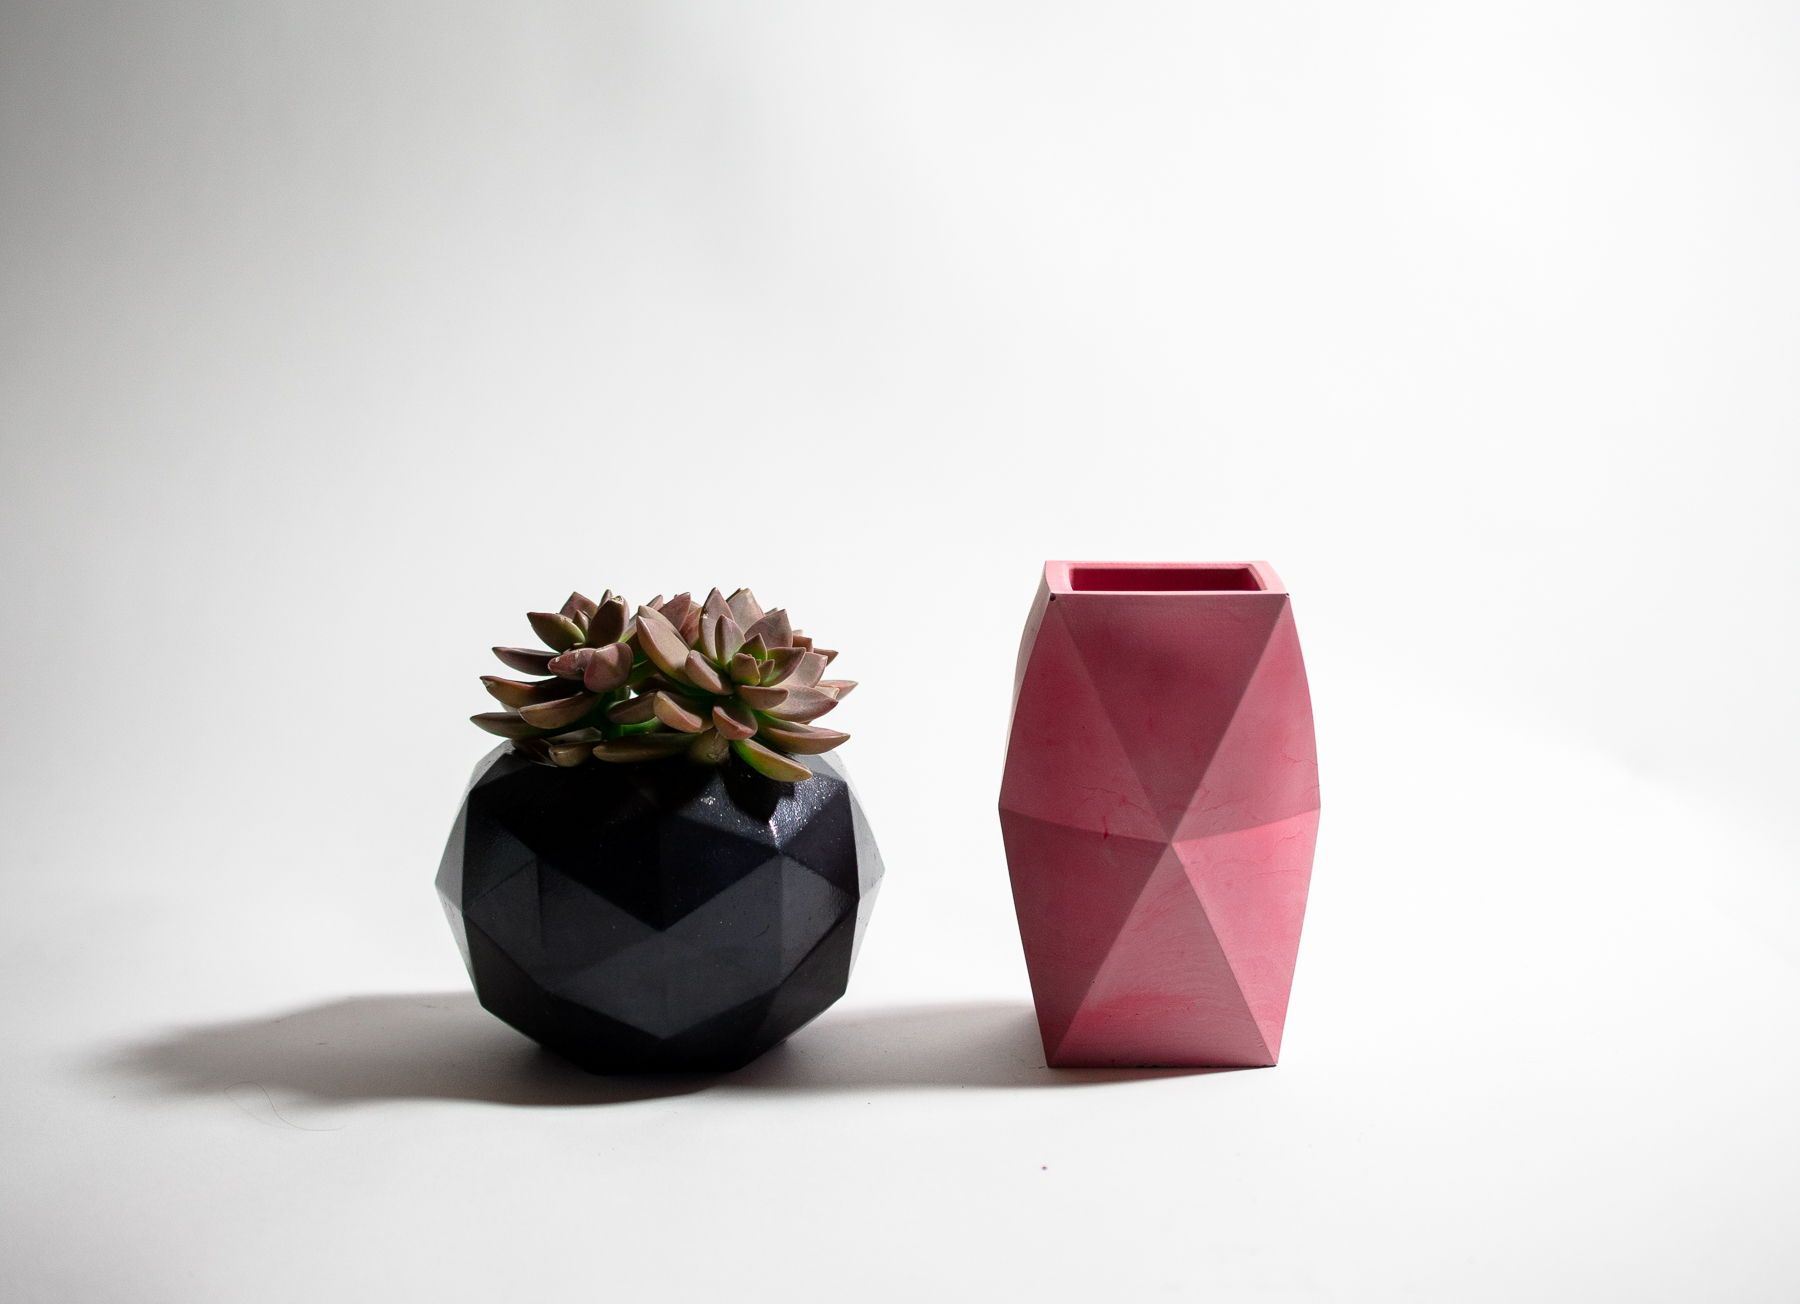 Concrete planters made from 100 reusable Silicone molds